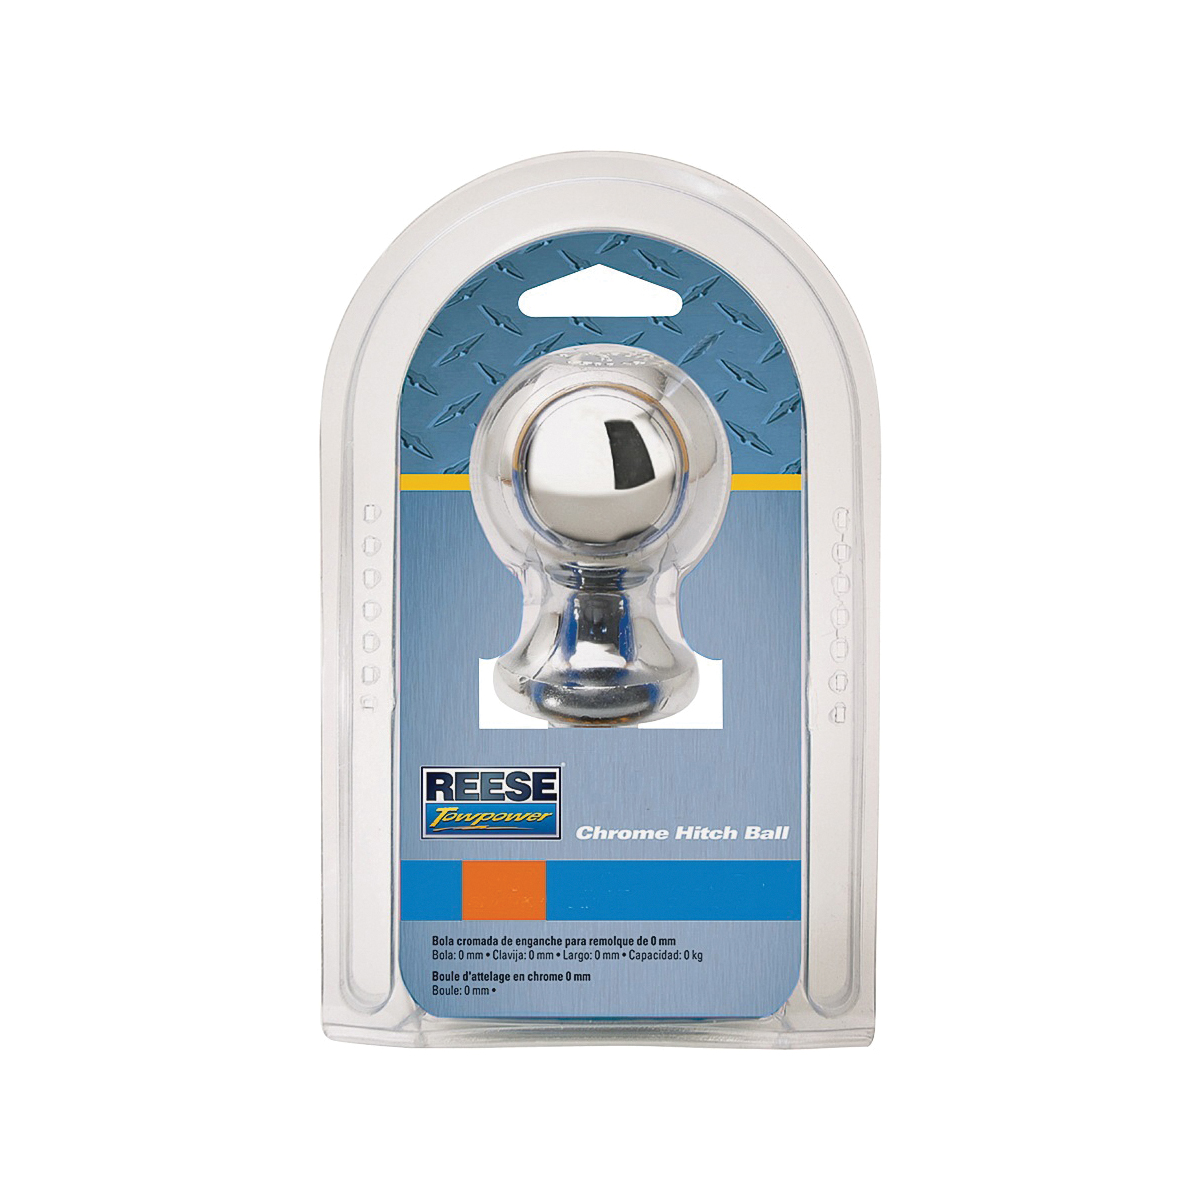 Picture of REESE TOWPOWER 7401036 Hitch Ball, 2 in Dia Ball, 1 in Dia Shank, 6000 lb Gross Towing, Steel